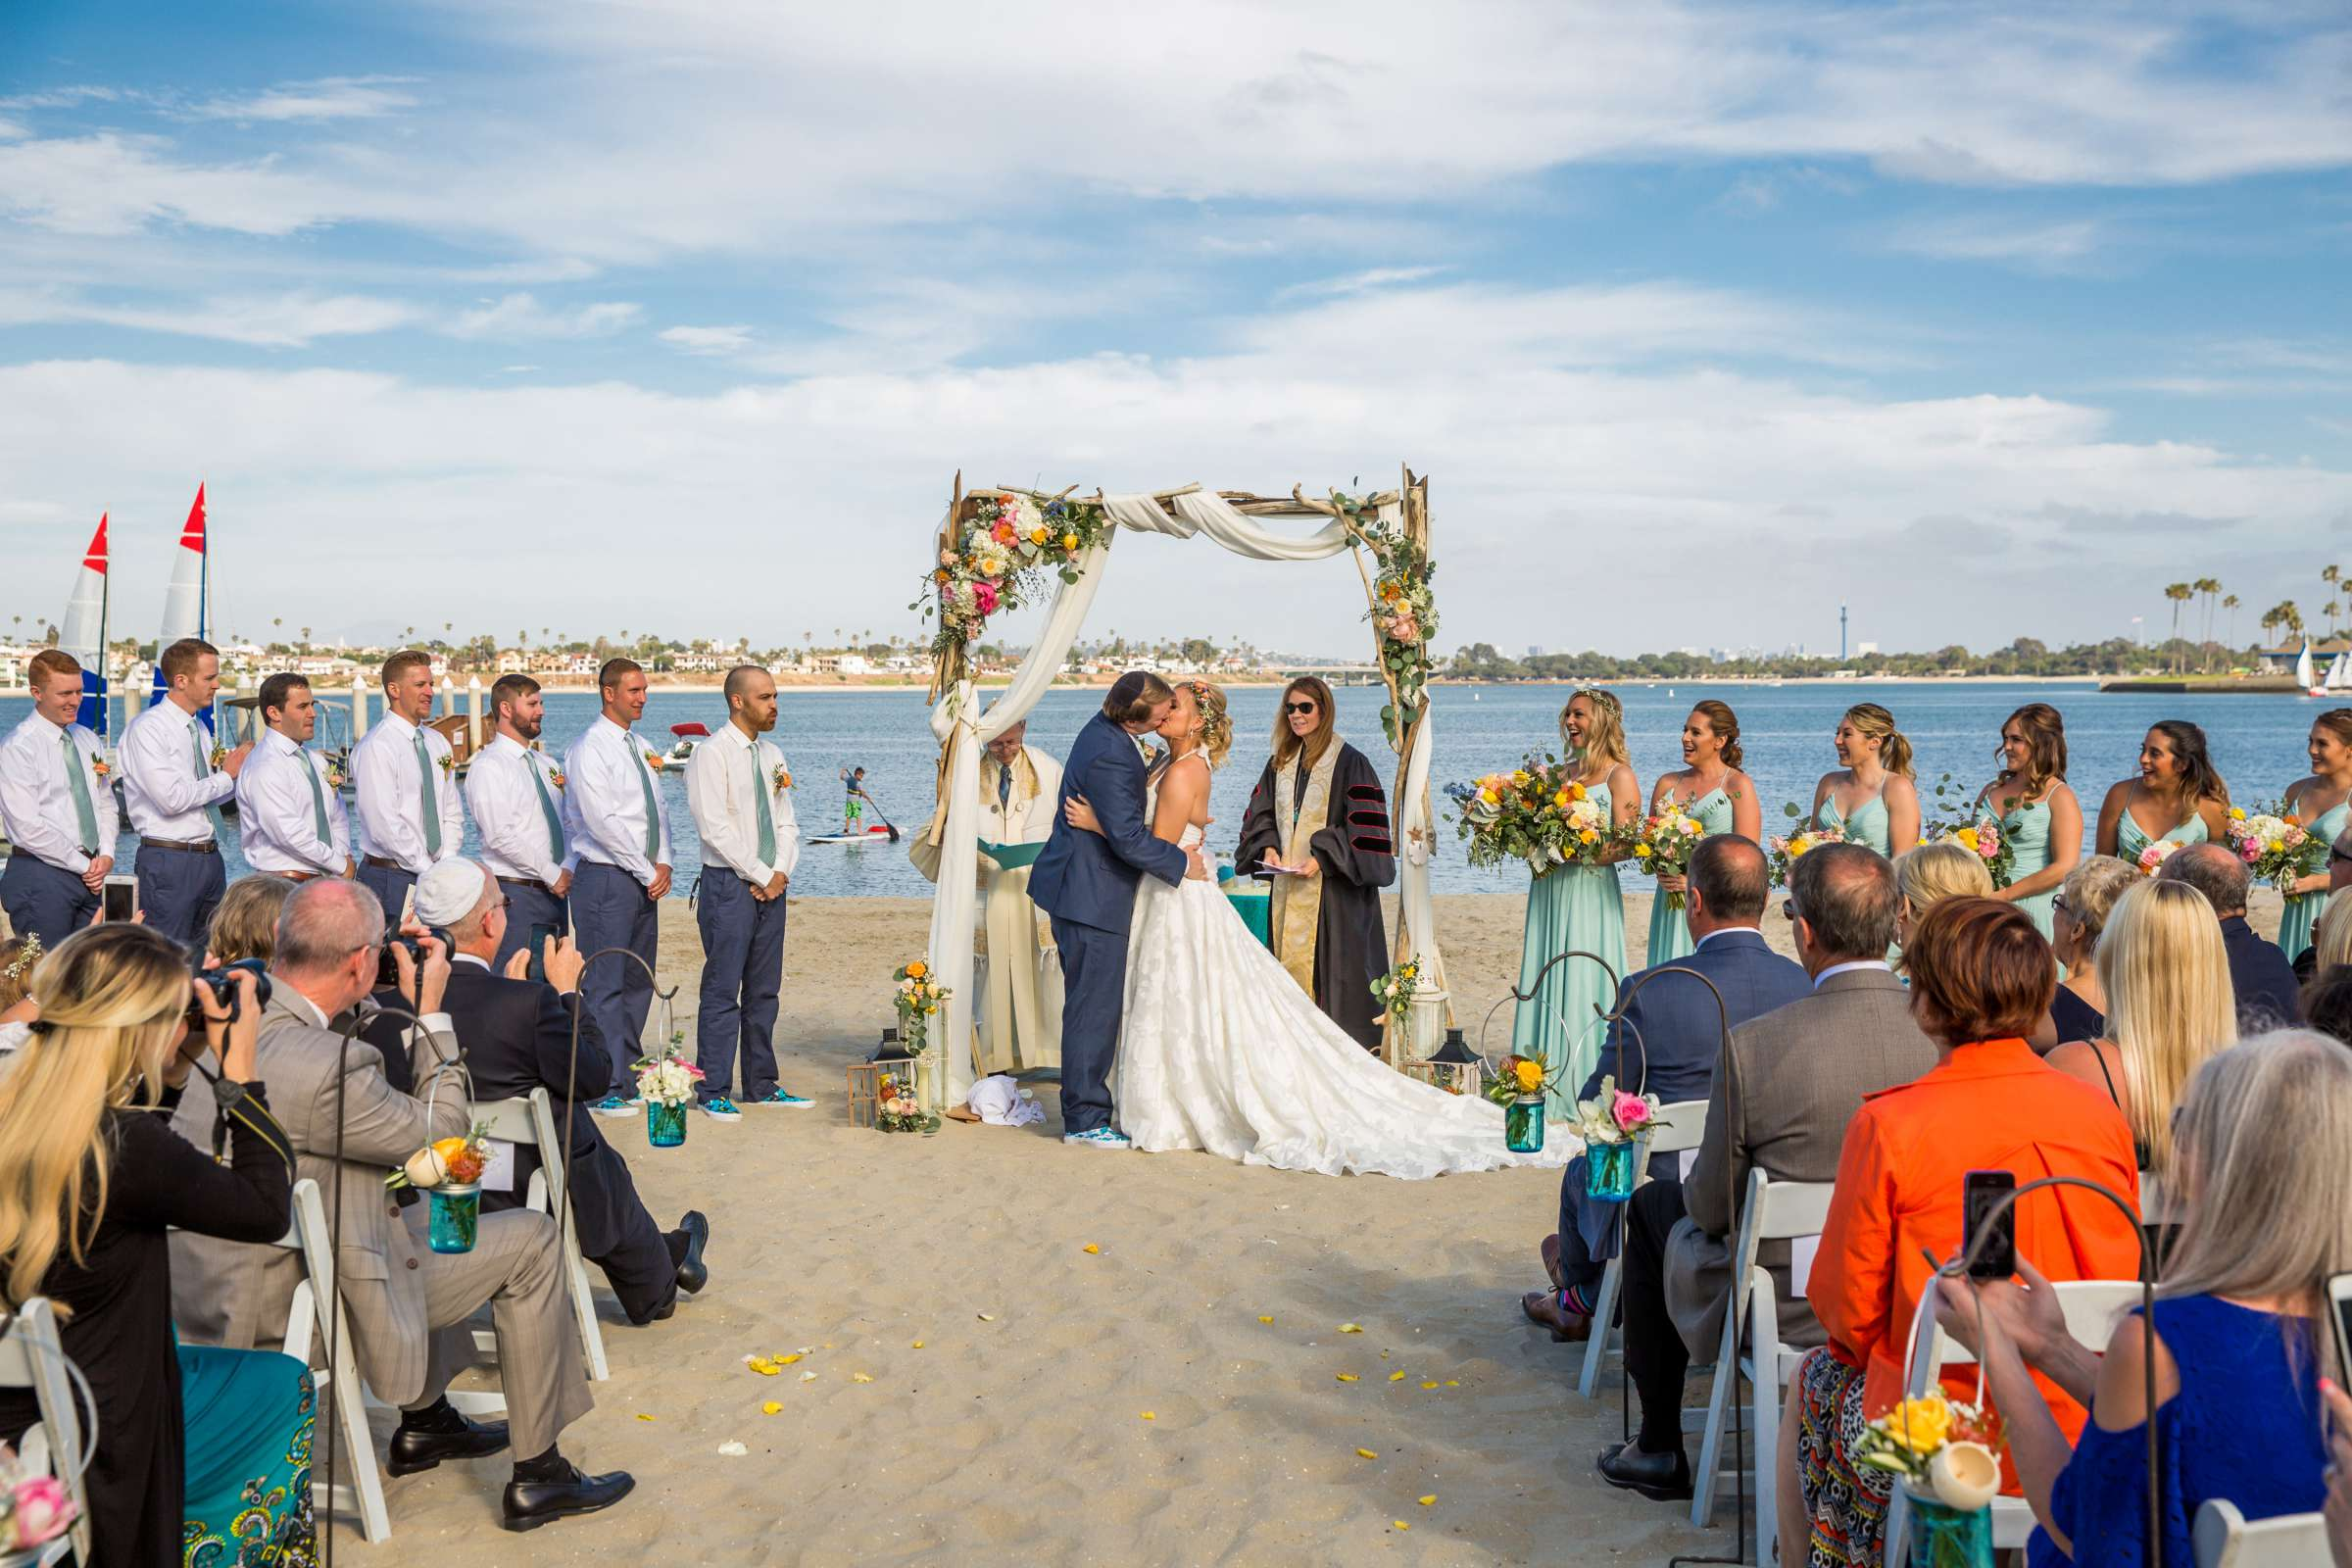 Catamaran Resort Wedding coordinated by Lavish Weddings, Brittany and David Wedding Photo #78 by True Photography